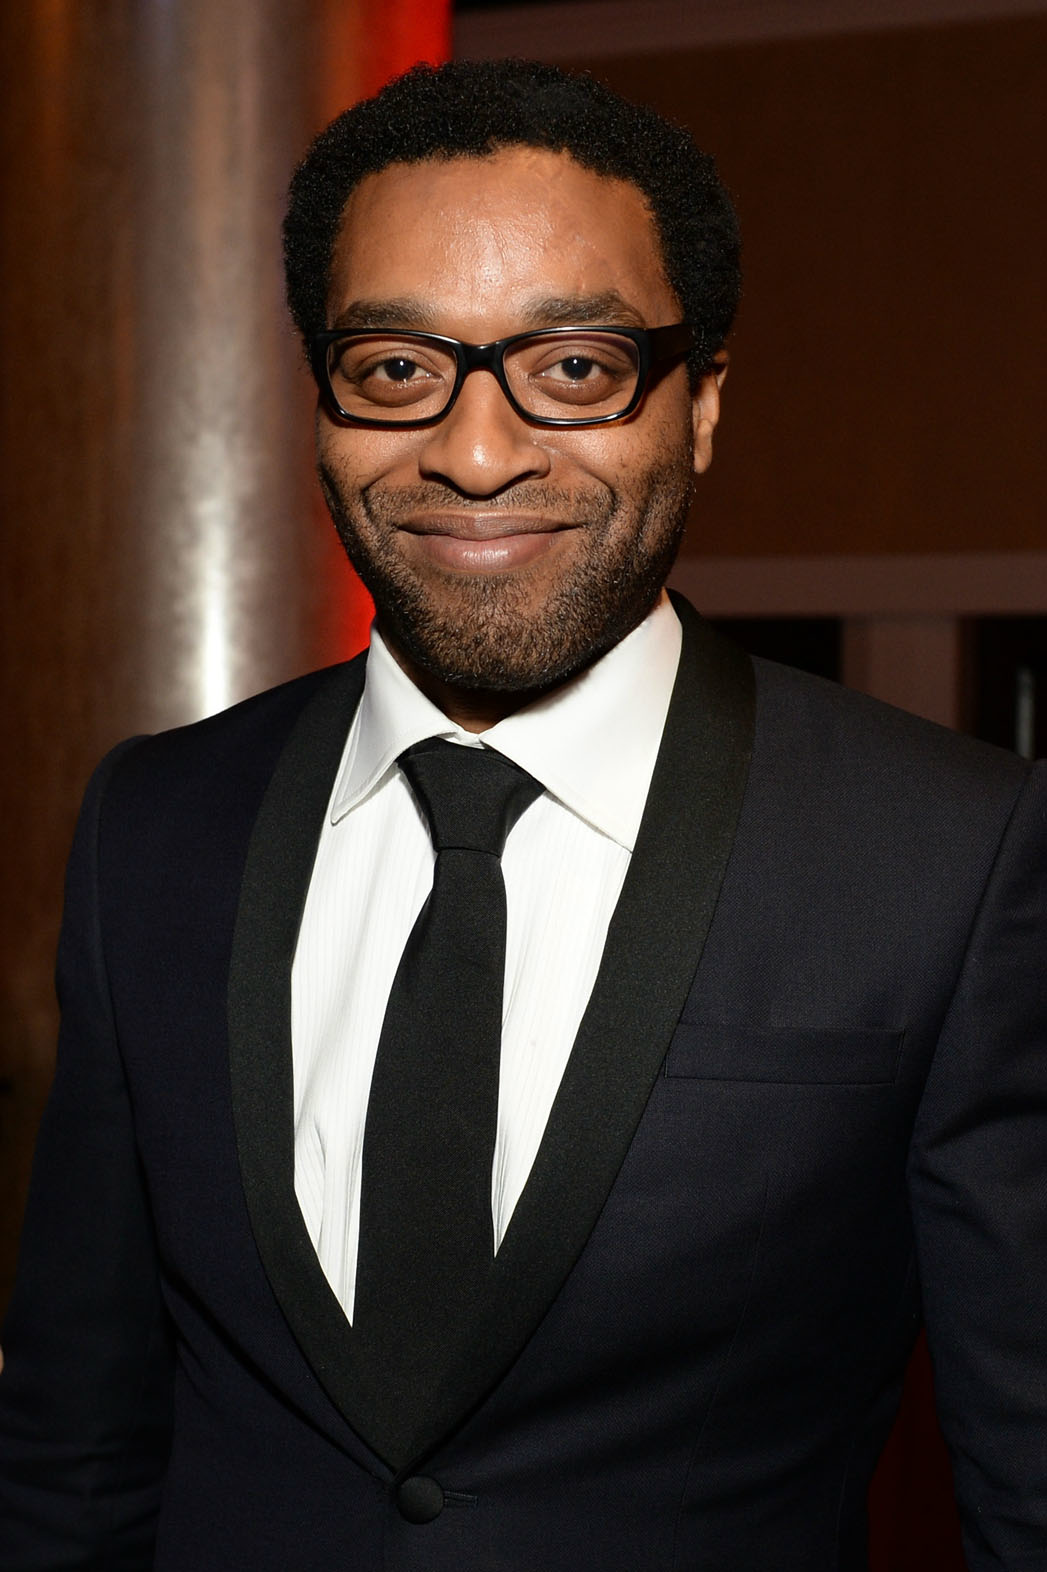 chiwetel ejiofor - photo #32